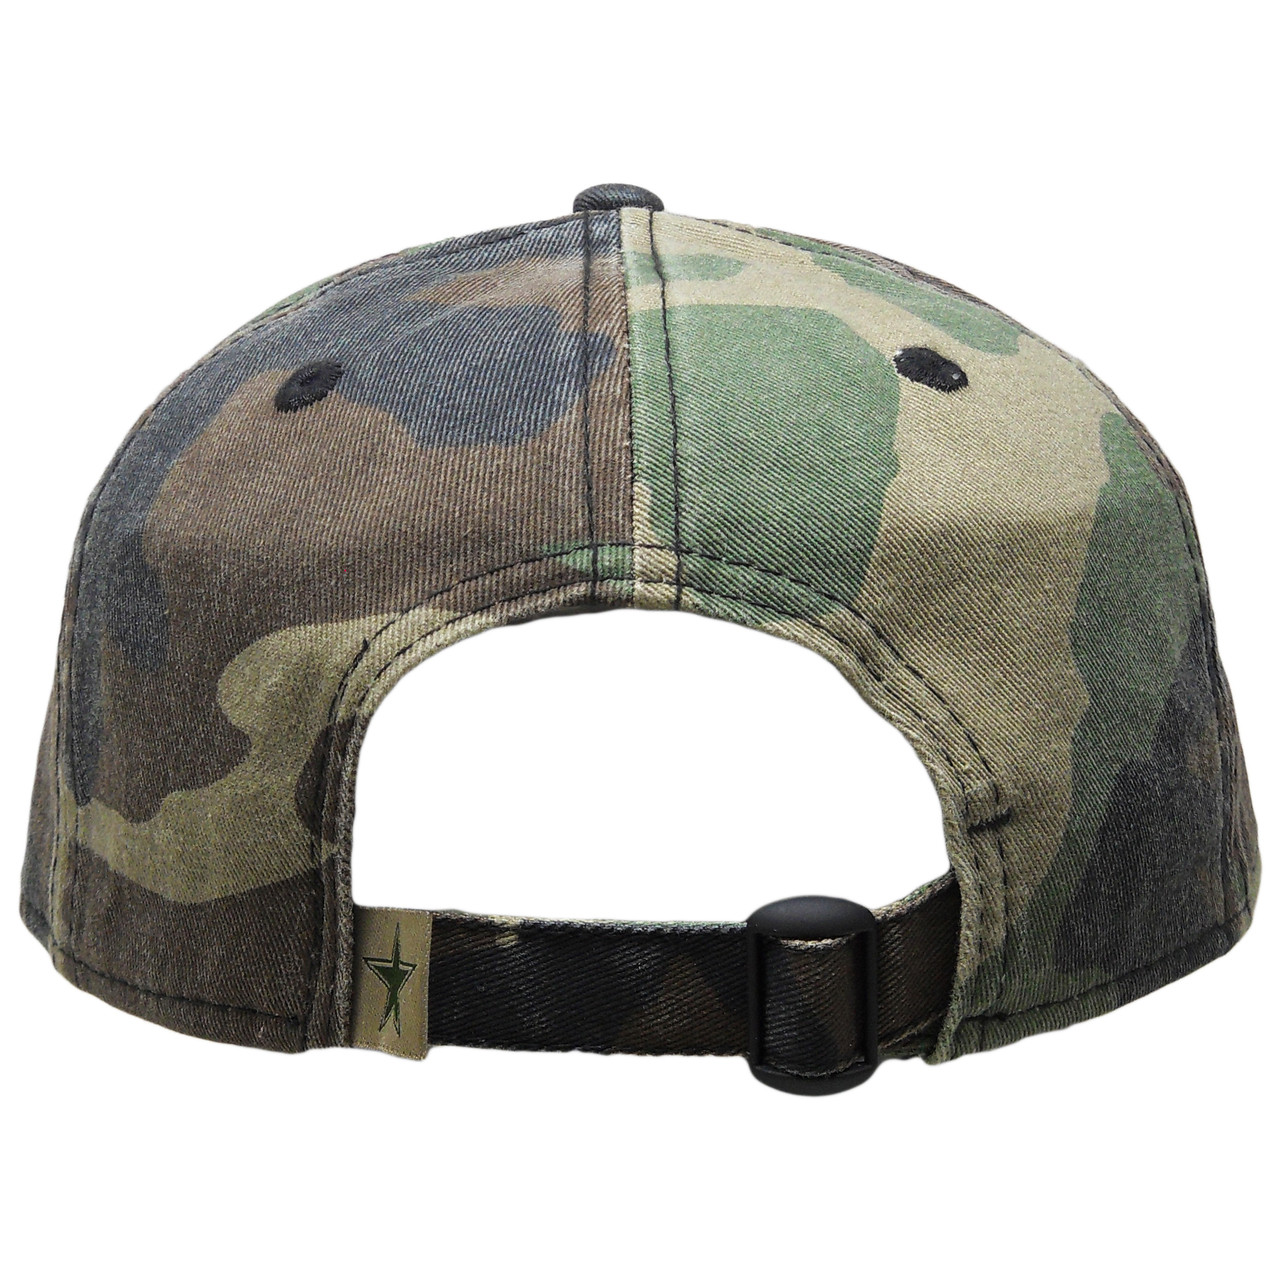 0b2e21d10e9 Dallas Cowboys New Era Core Classic 9Twenty Adjustable Hat - Camouflage -  ECapsUnlimited.com